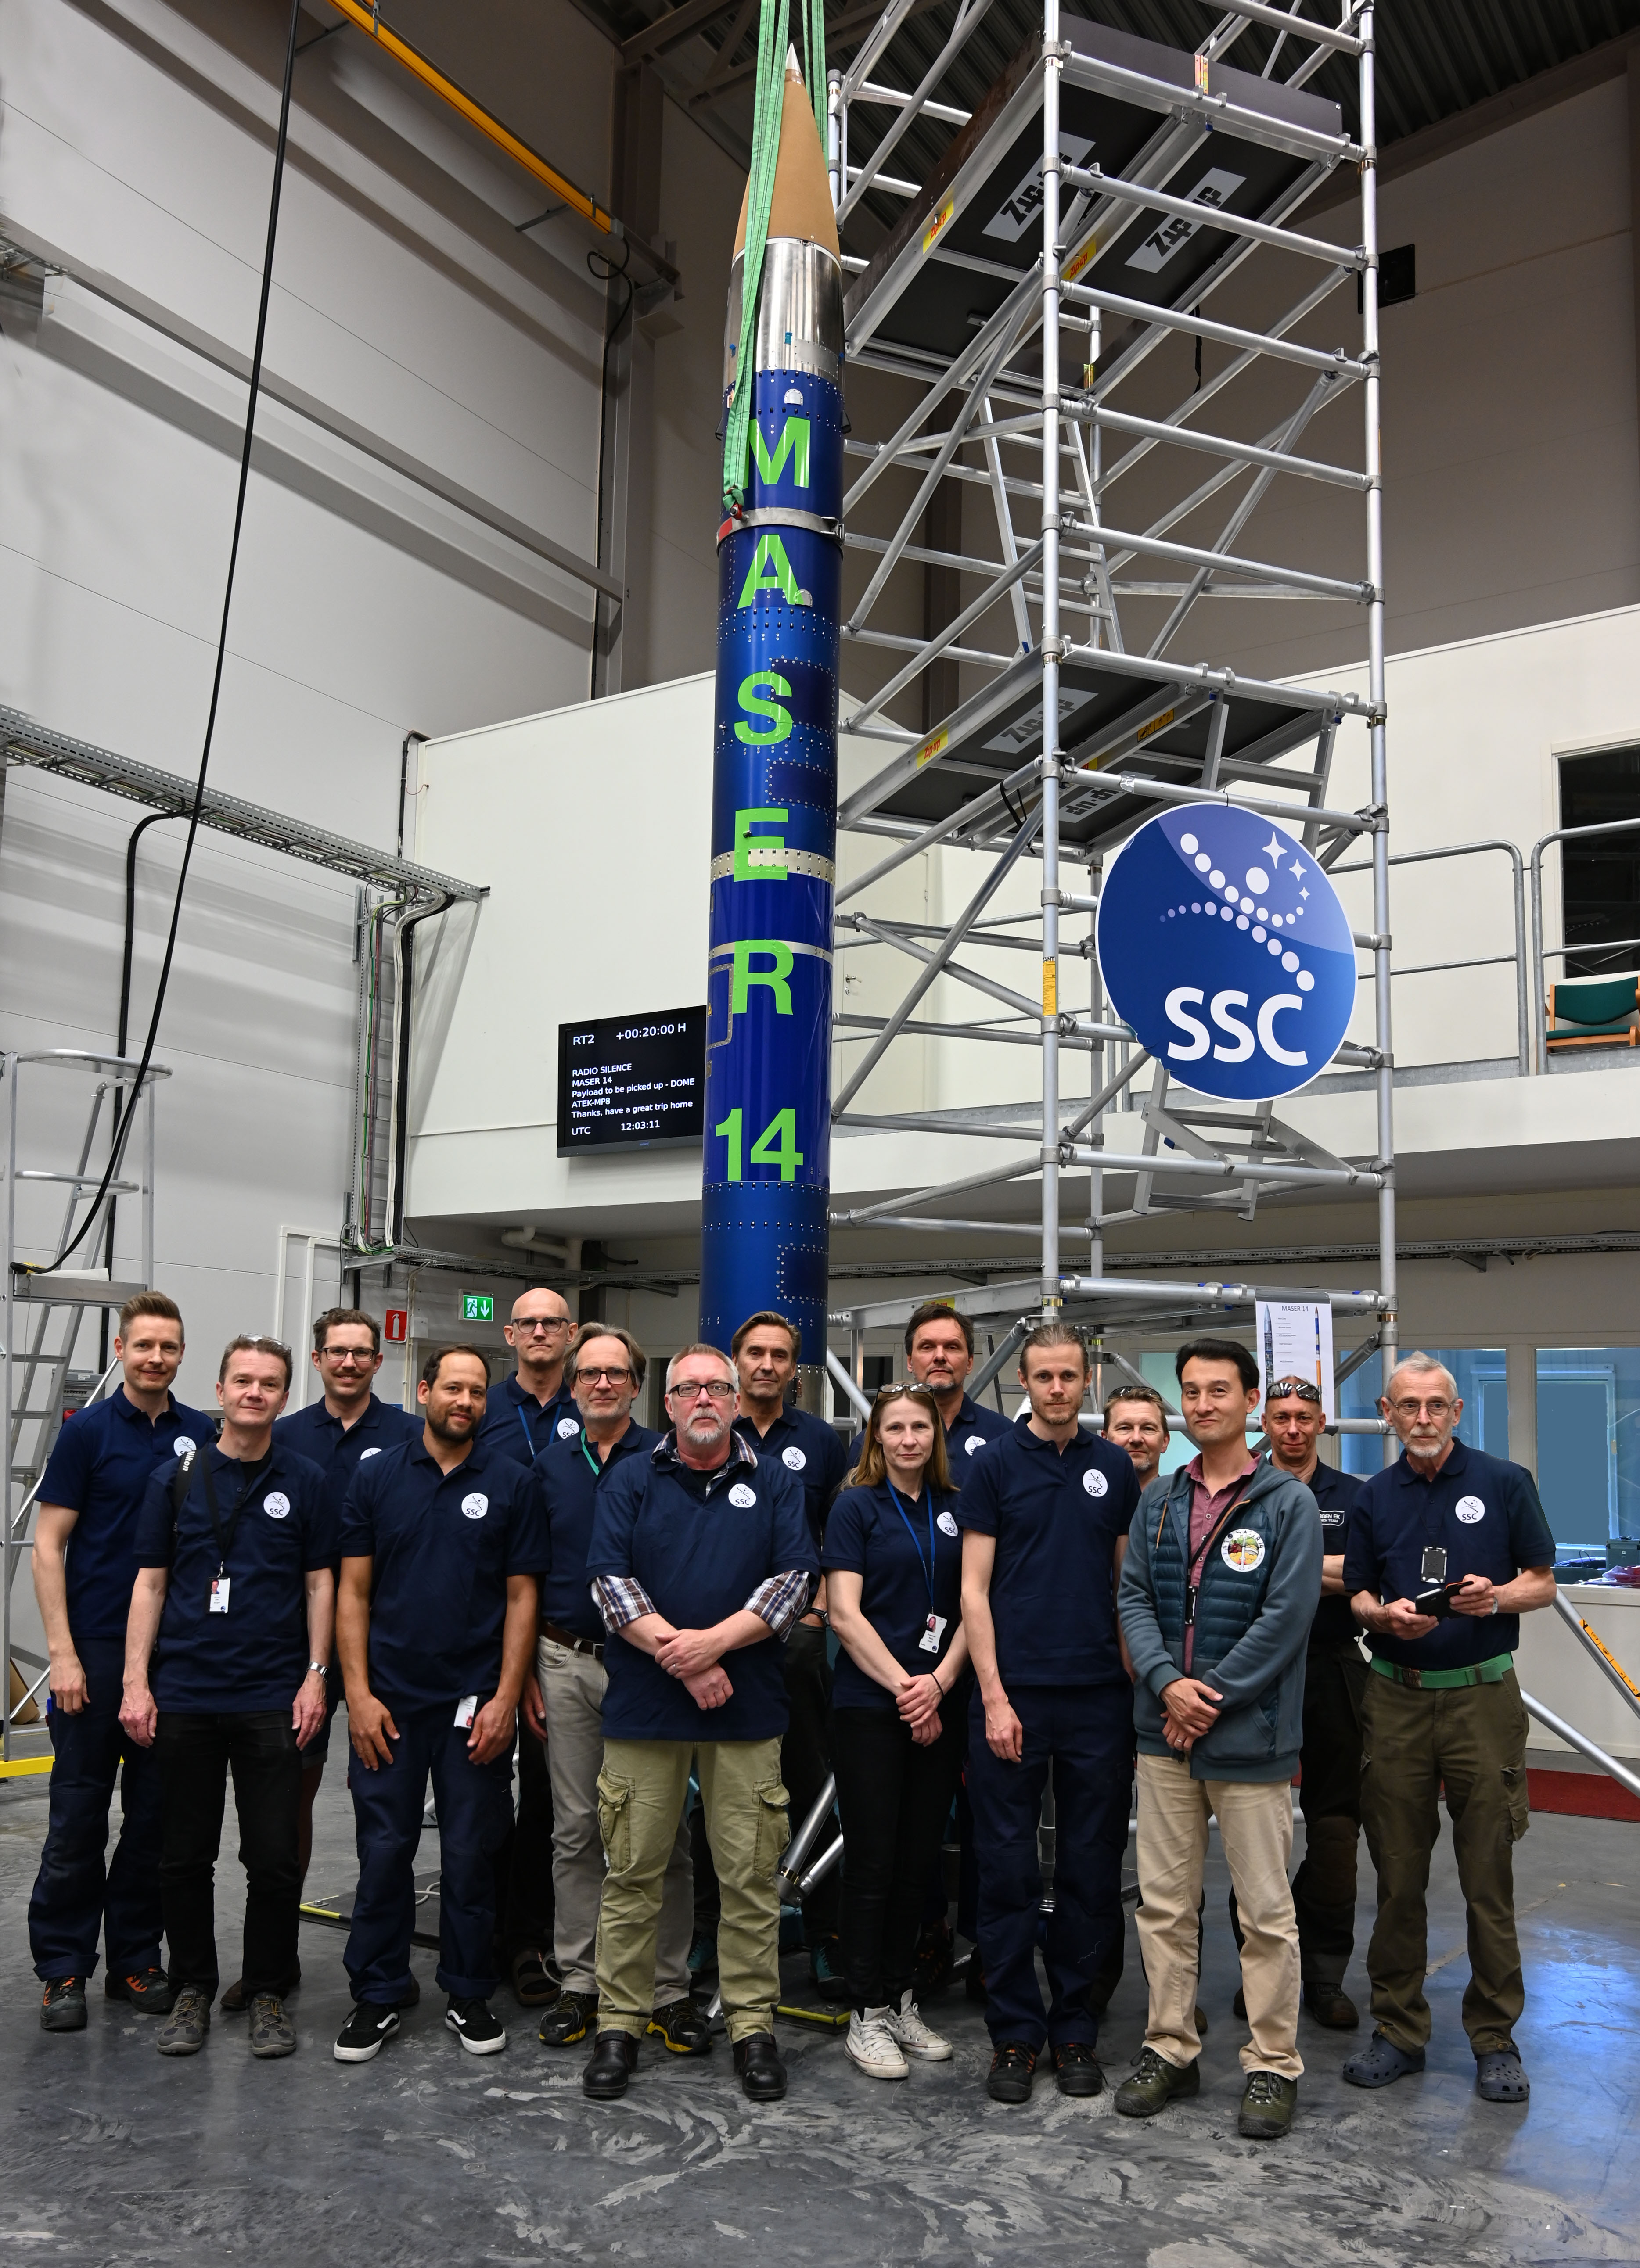 SSC team in front of MASER 14 payload